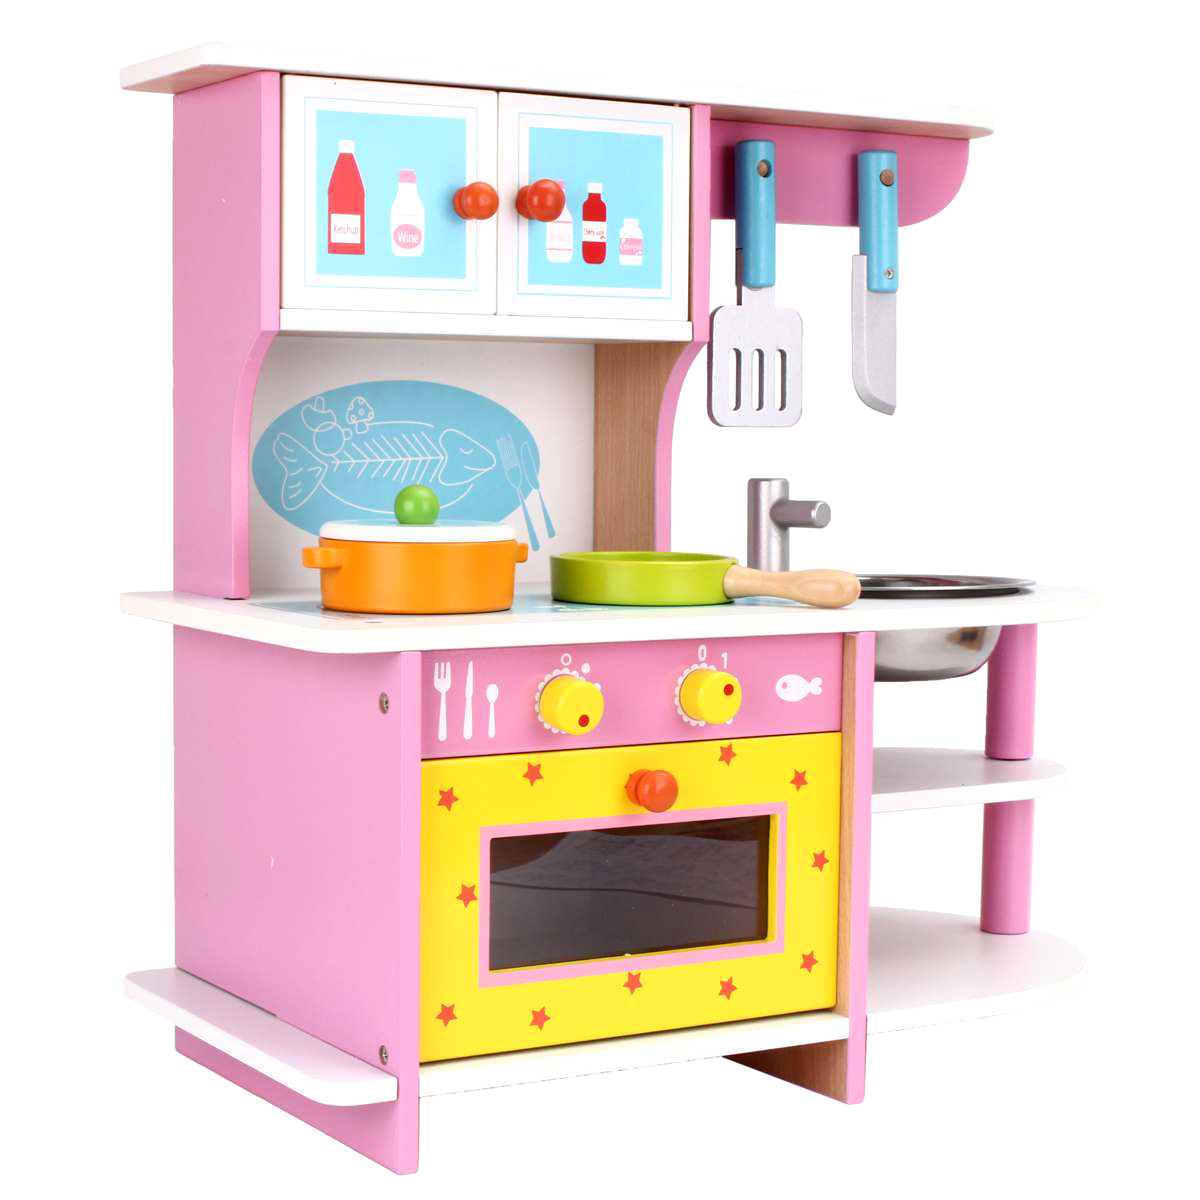 Children's Wooden Early Education Educational Toys Simulated Kitchen Suit Girls'birthday Gifts Parent-child Interactive Toys